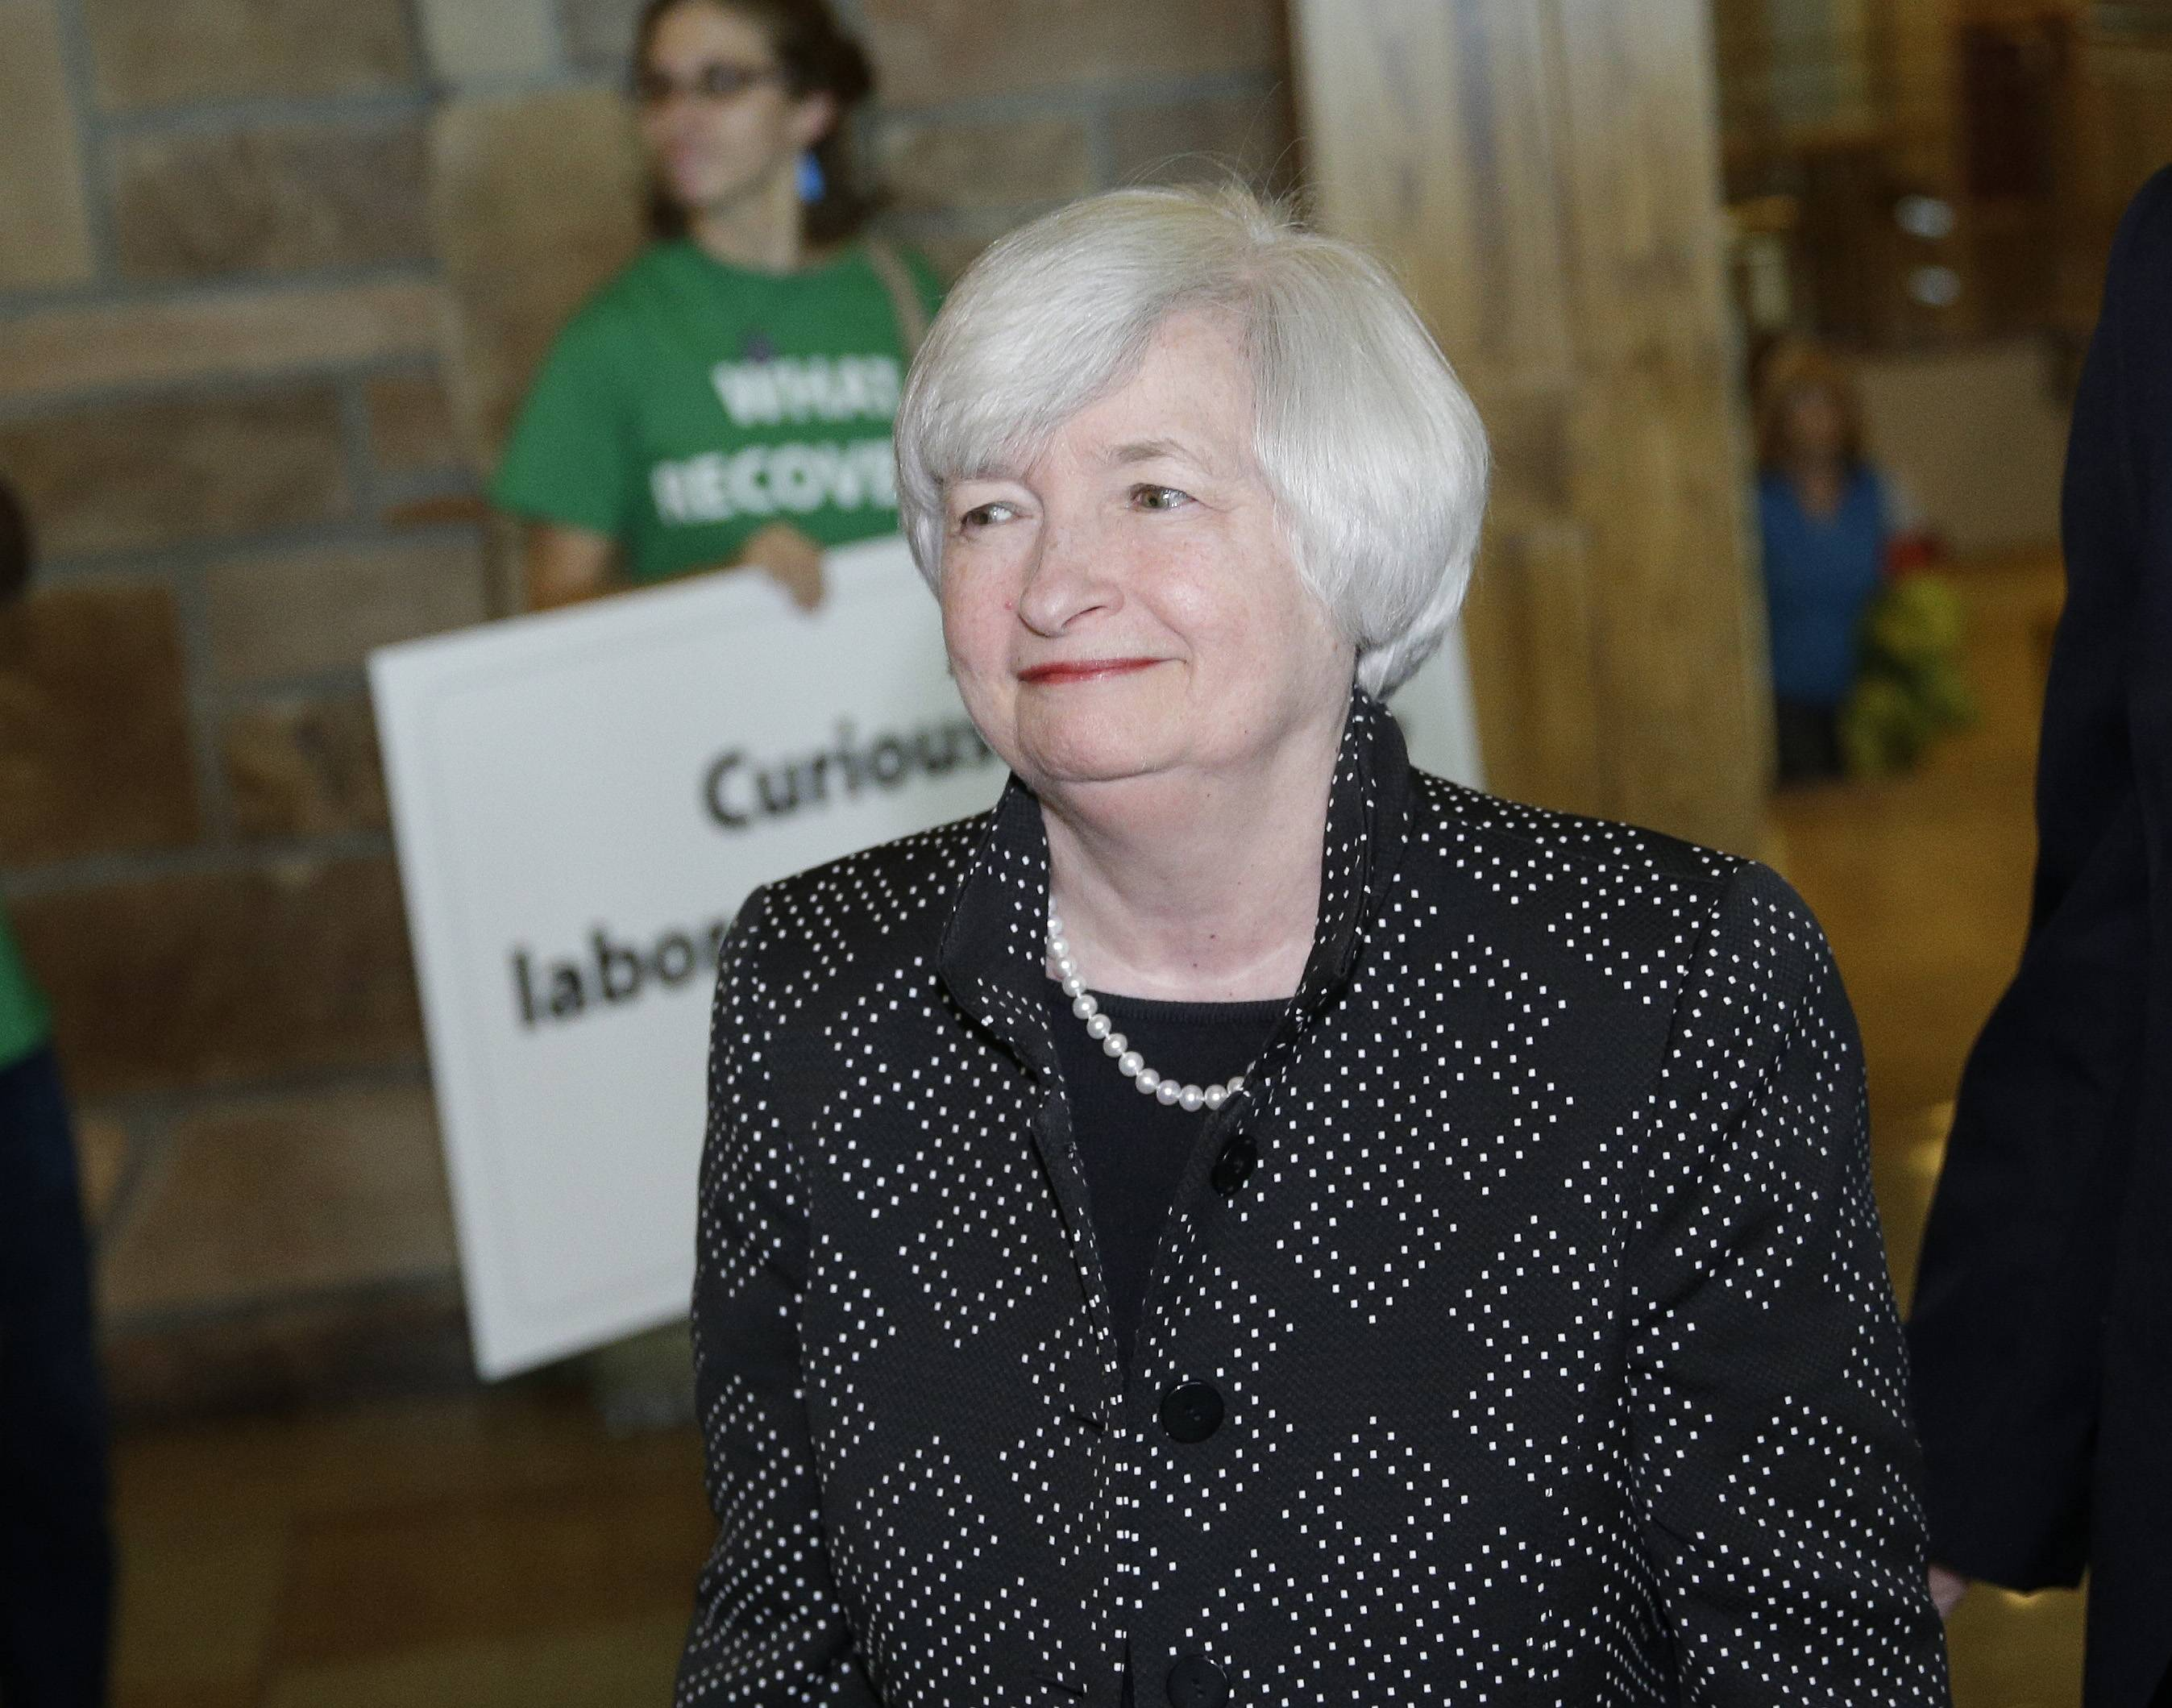 Federal Reserve Chair Janet Yellen arrives Thursday for a dinner during the Jackson Hole Economic Policy Symposium at the Jackson Lake Lodge in Grand Teton National Park near Jackson, Wyo.